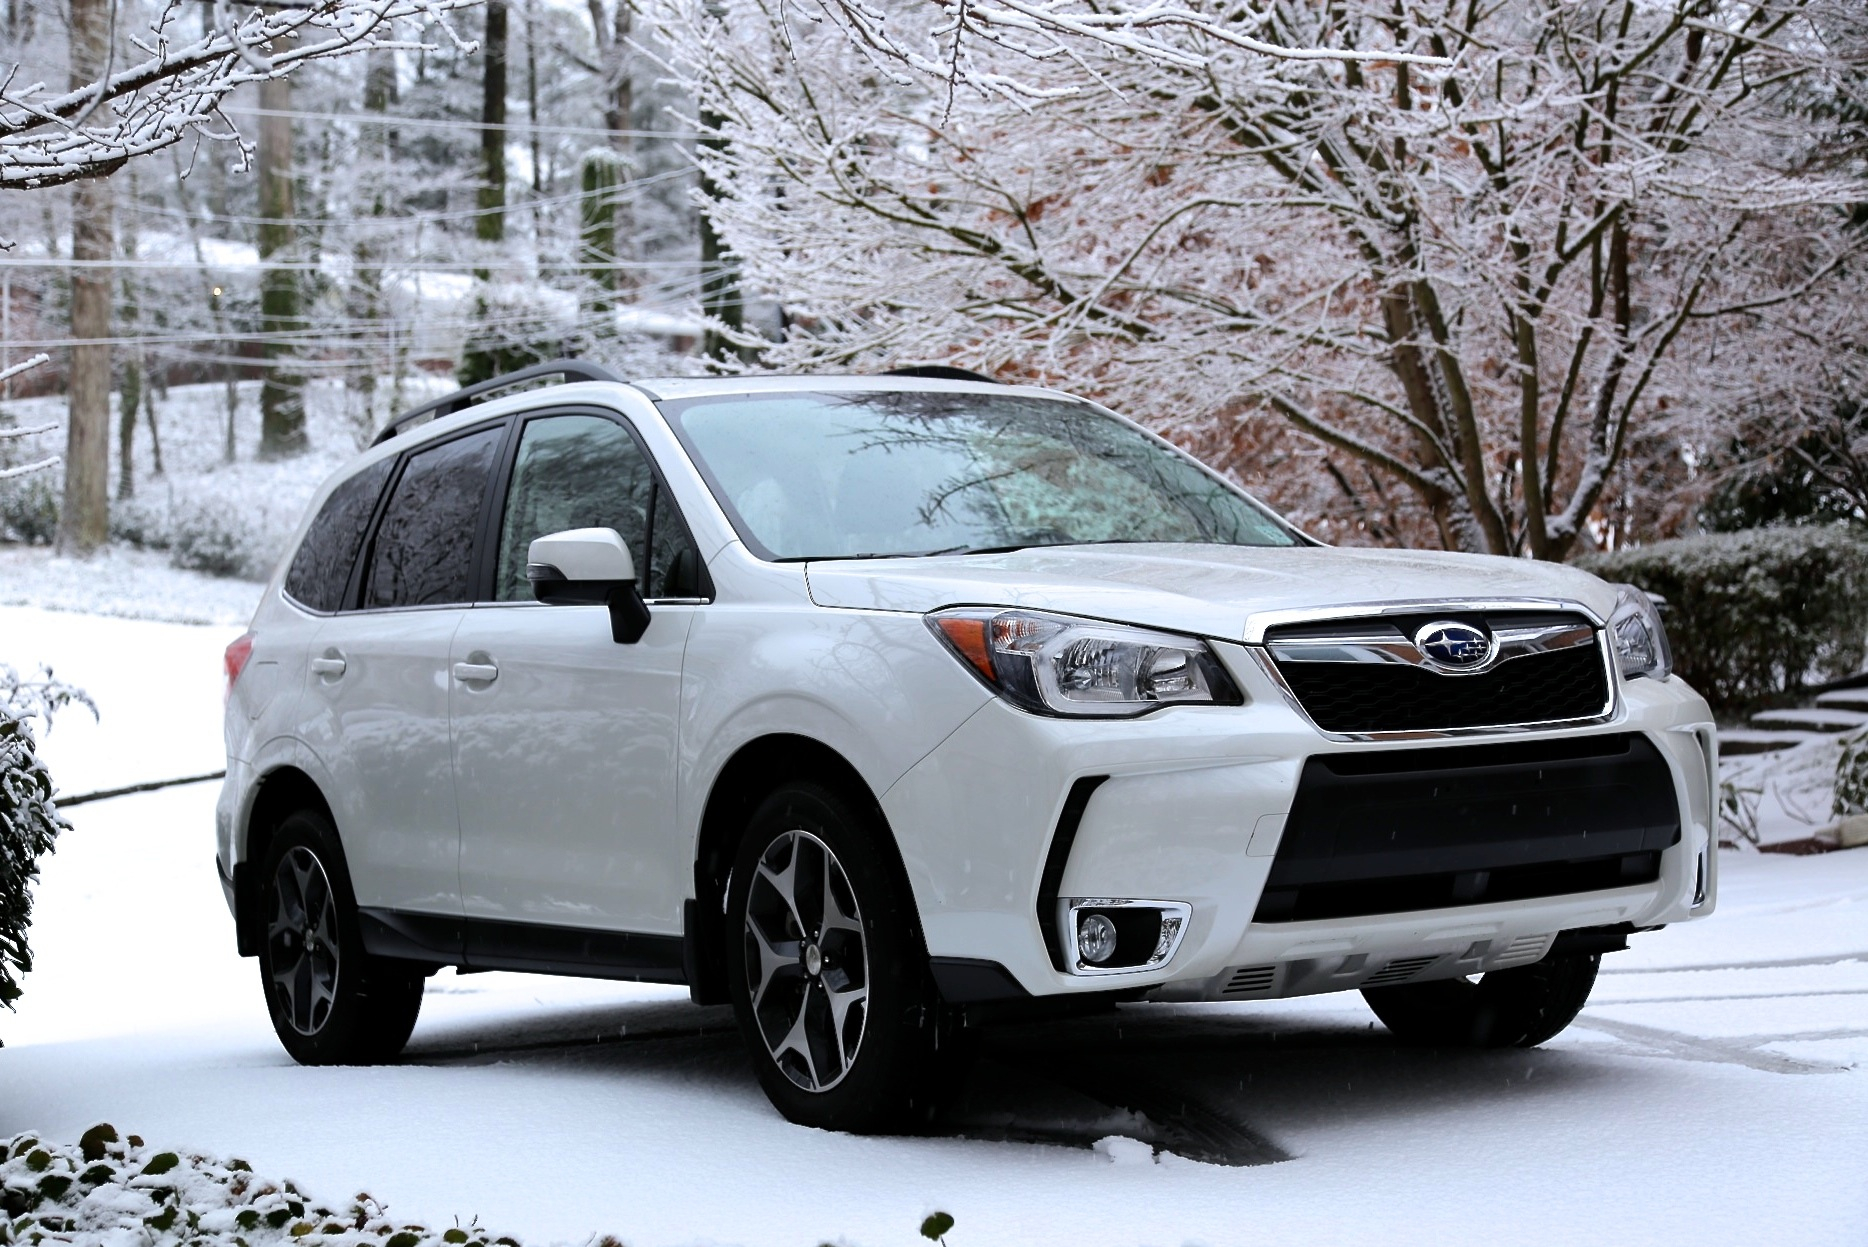 2014 Subaru Forester Xt: Six-Month Road Test - 2022 Subaru Forester Lifted Gas Mileage, Release Date